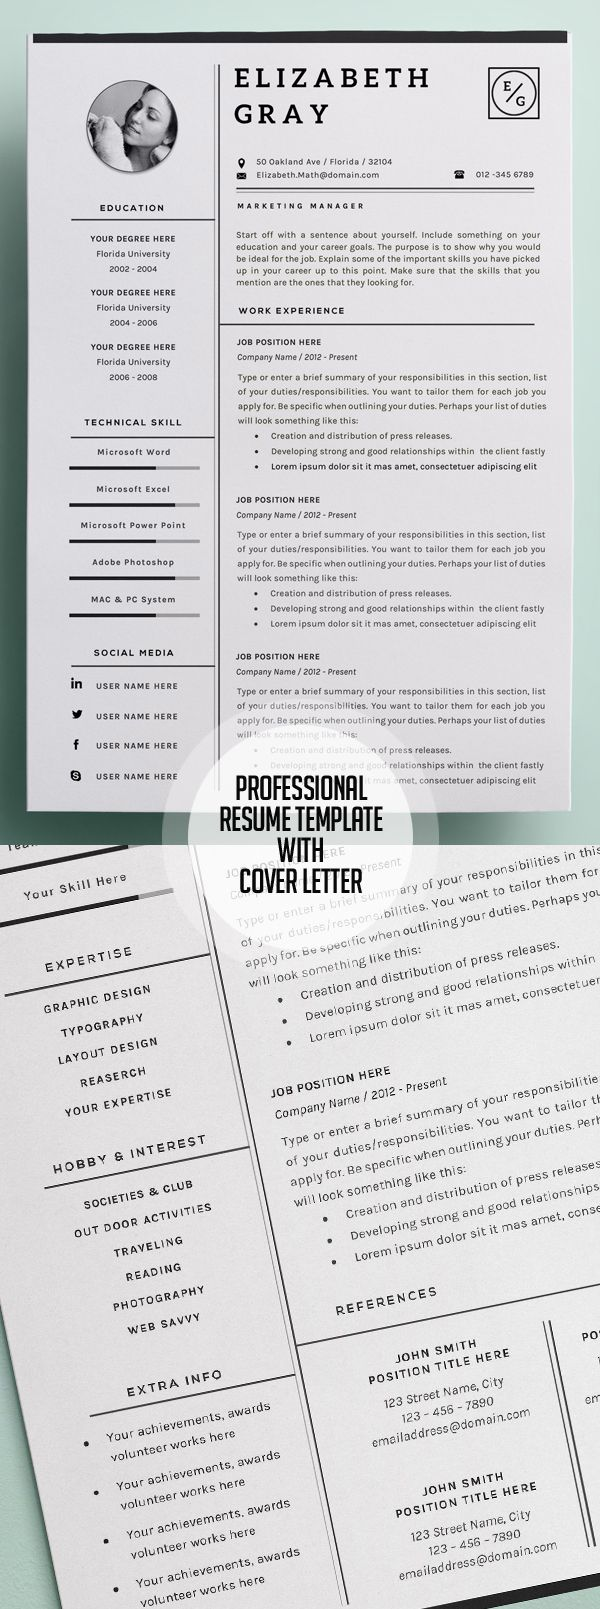 Opposenewapstandardsus  Mesmerizing  Resume Ideas On Pinterest  Resume Resume Templates And  With Engaging Professional And Modern Resume Template With Page Cover Cvtemplate With Comely Truck Driver Resume Sample Also Professional Engineer Resume In Addition Resume Contact Information And Resume Sample Pdf As Well As Mba Resume Template Additionally Teen Resume Sample From Pinterestcom With Opposenewapstandardsus  Engaging  Resume Ideas On Pinterest  Resume Resume Templates And  With Comely Professional And Modern Resume Template With Page Cover Cvtemplate And Mesmerizing Truck Driver Resume Sample Also Professional Engineer Resume In Addition Resume Contact Information From Pinterestcom